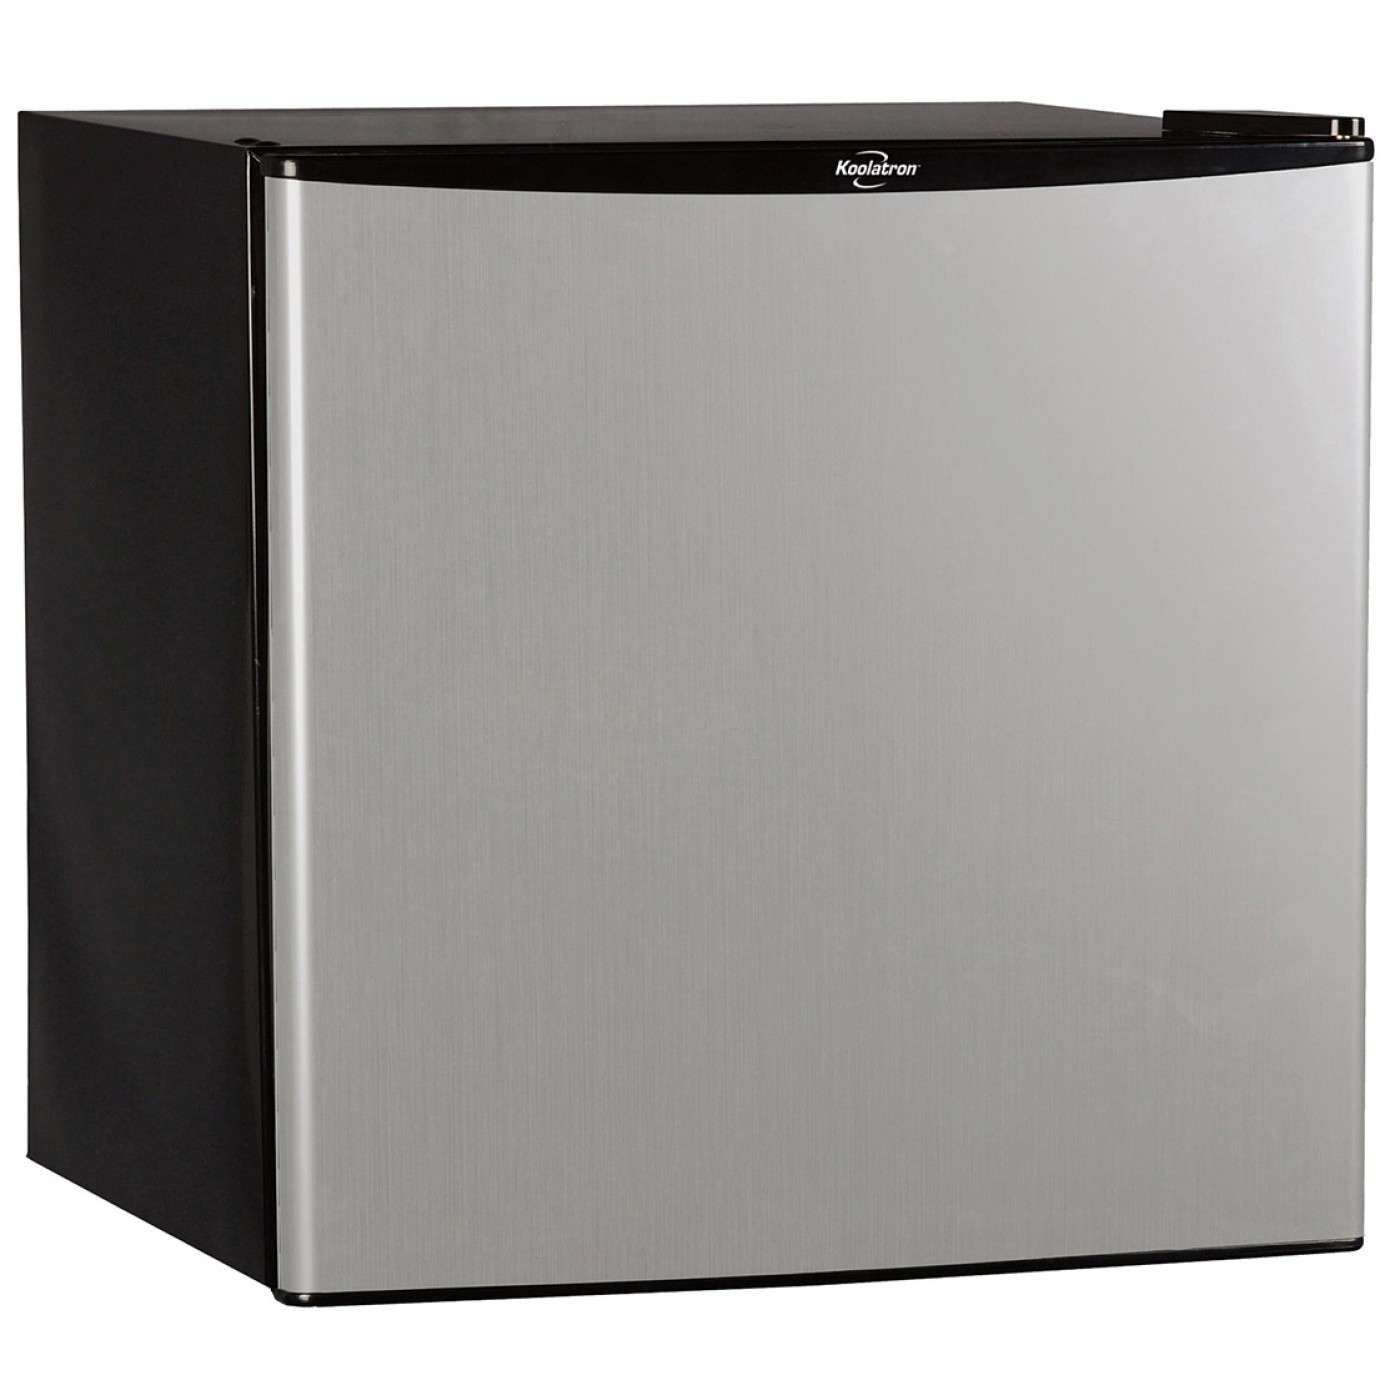 1 6 Cu Ft Kool Stainless Steel Front Compact Refrigerator Compact Refrigerator Refrigerator Compressor